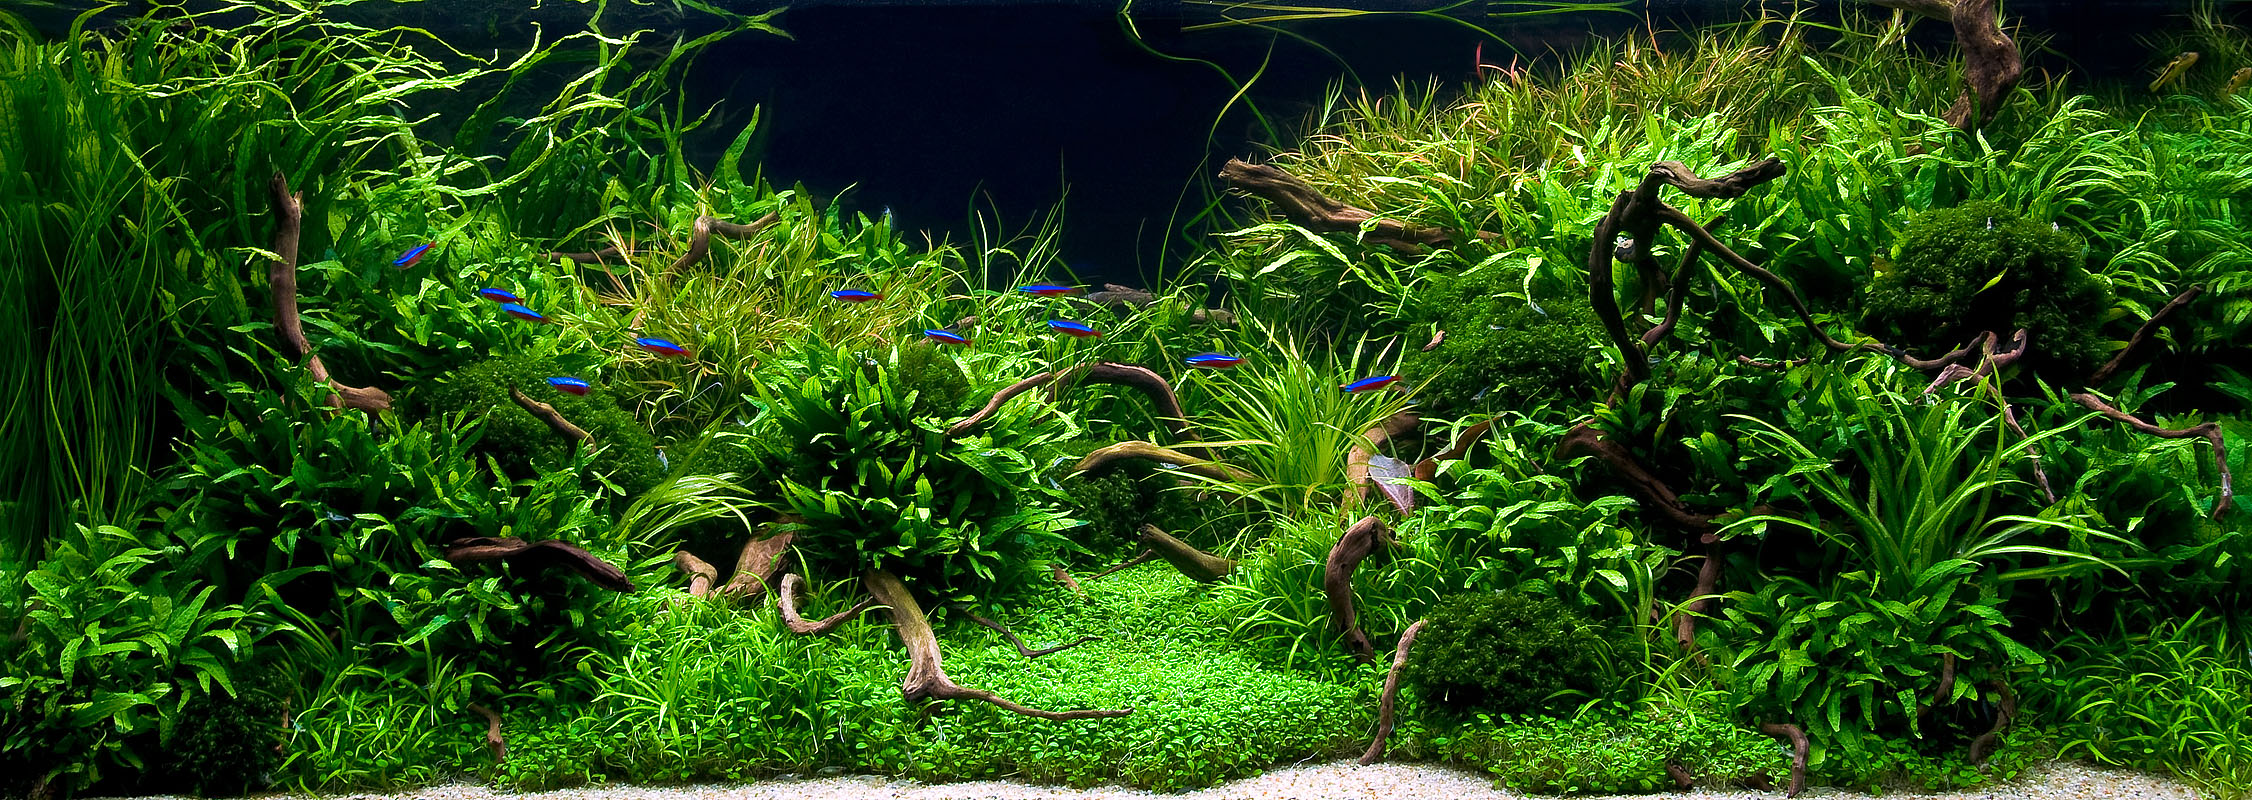 Aquarium Plants Near Me